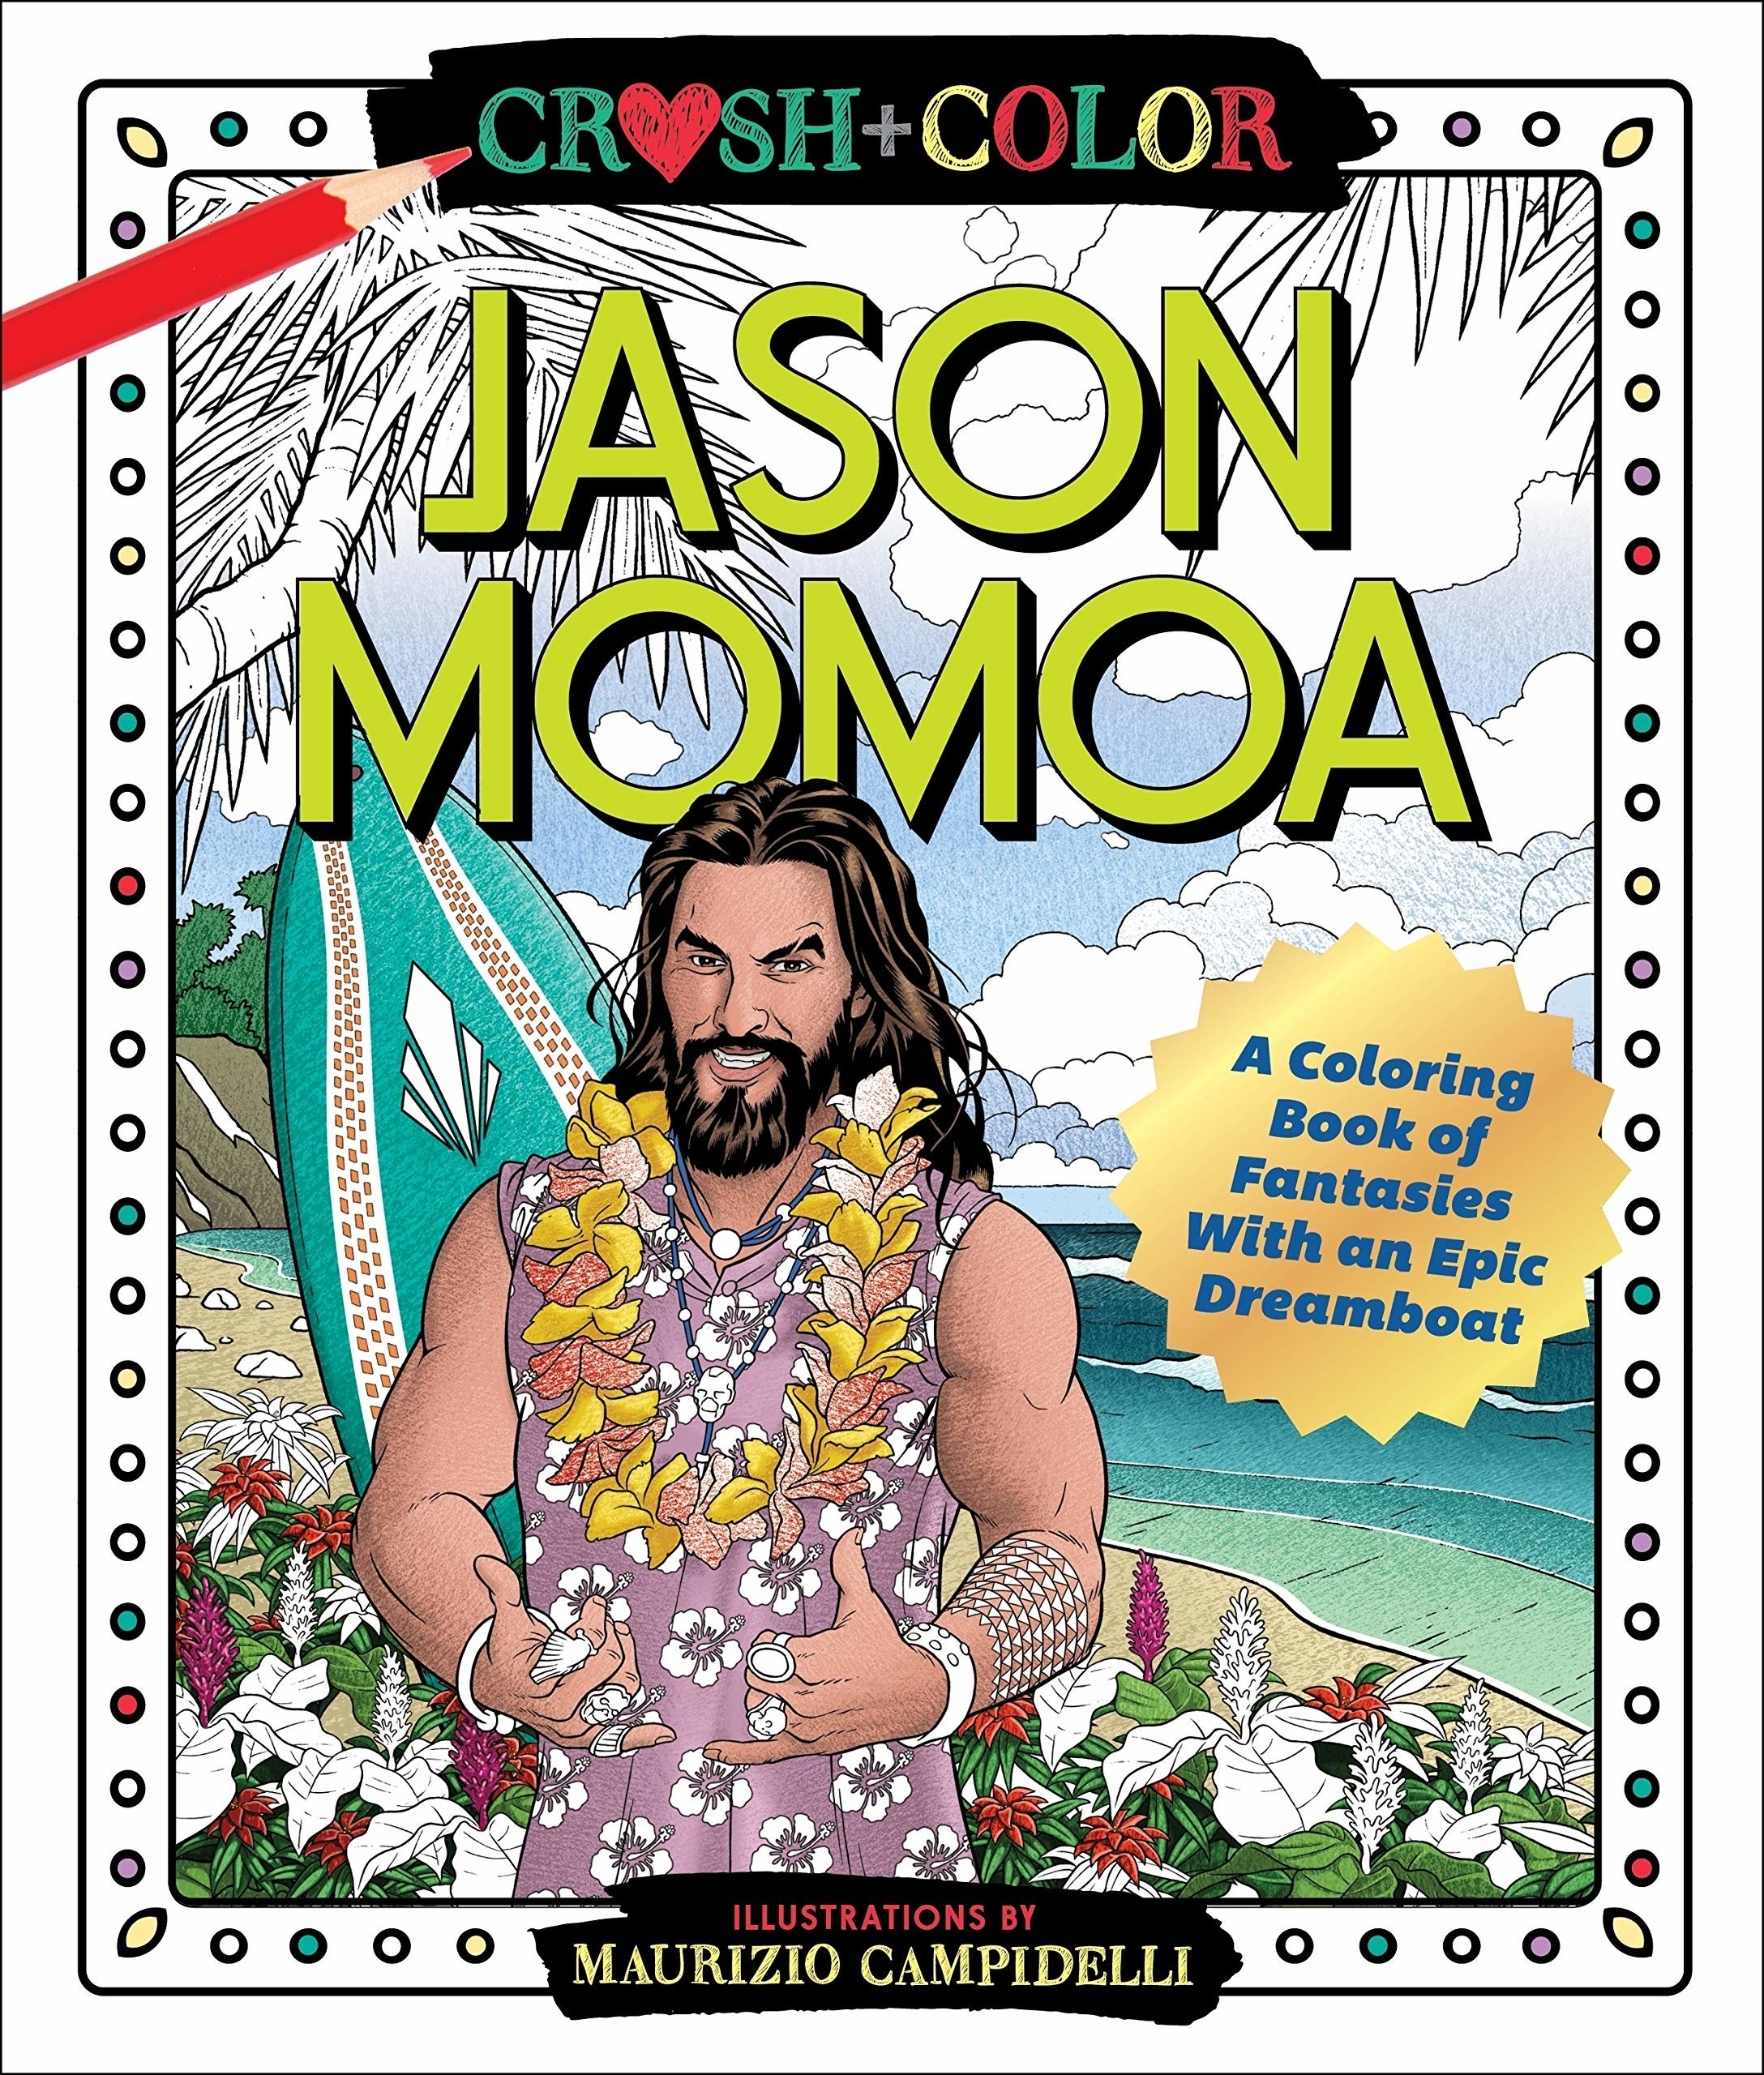 The cover of the Jason Moma colouring book